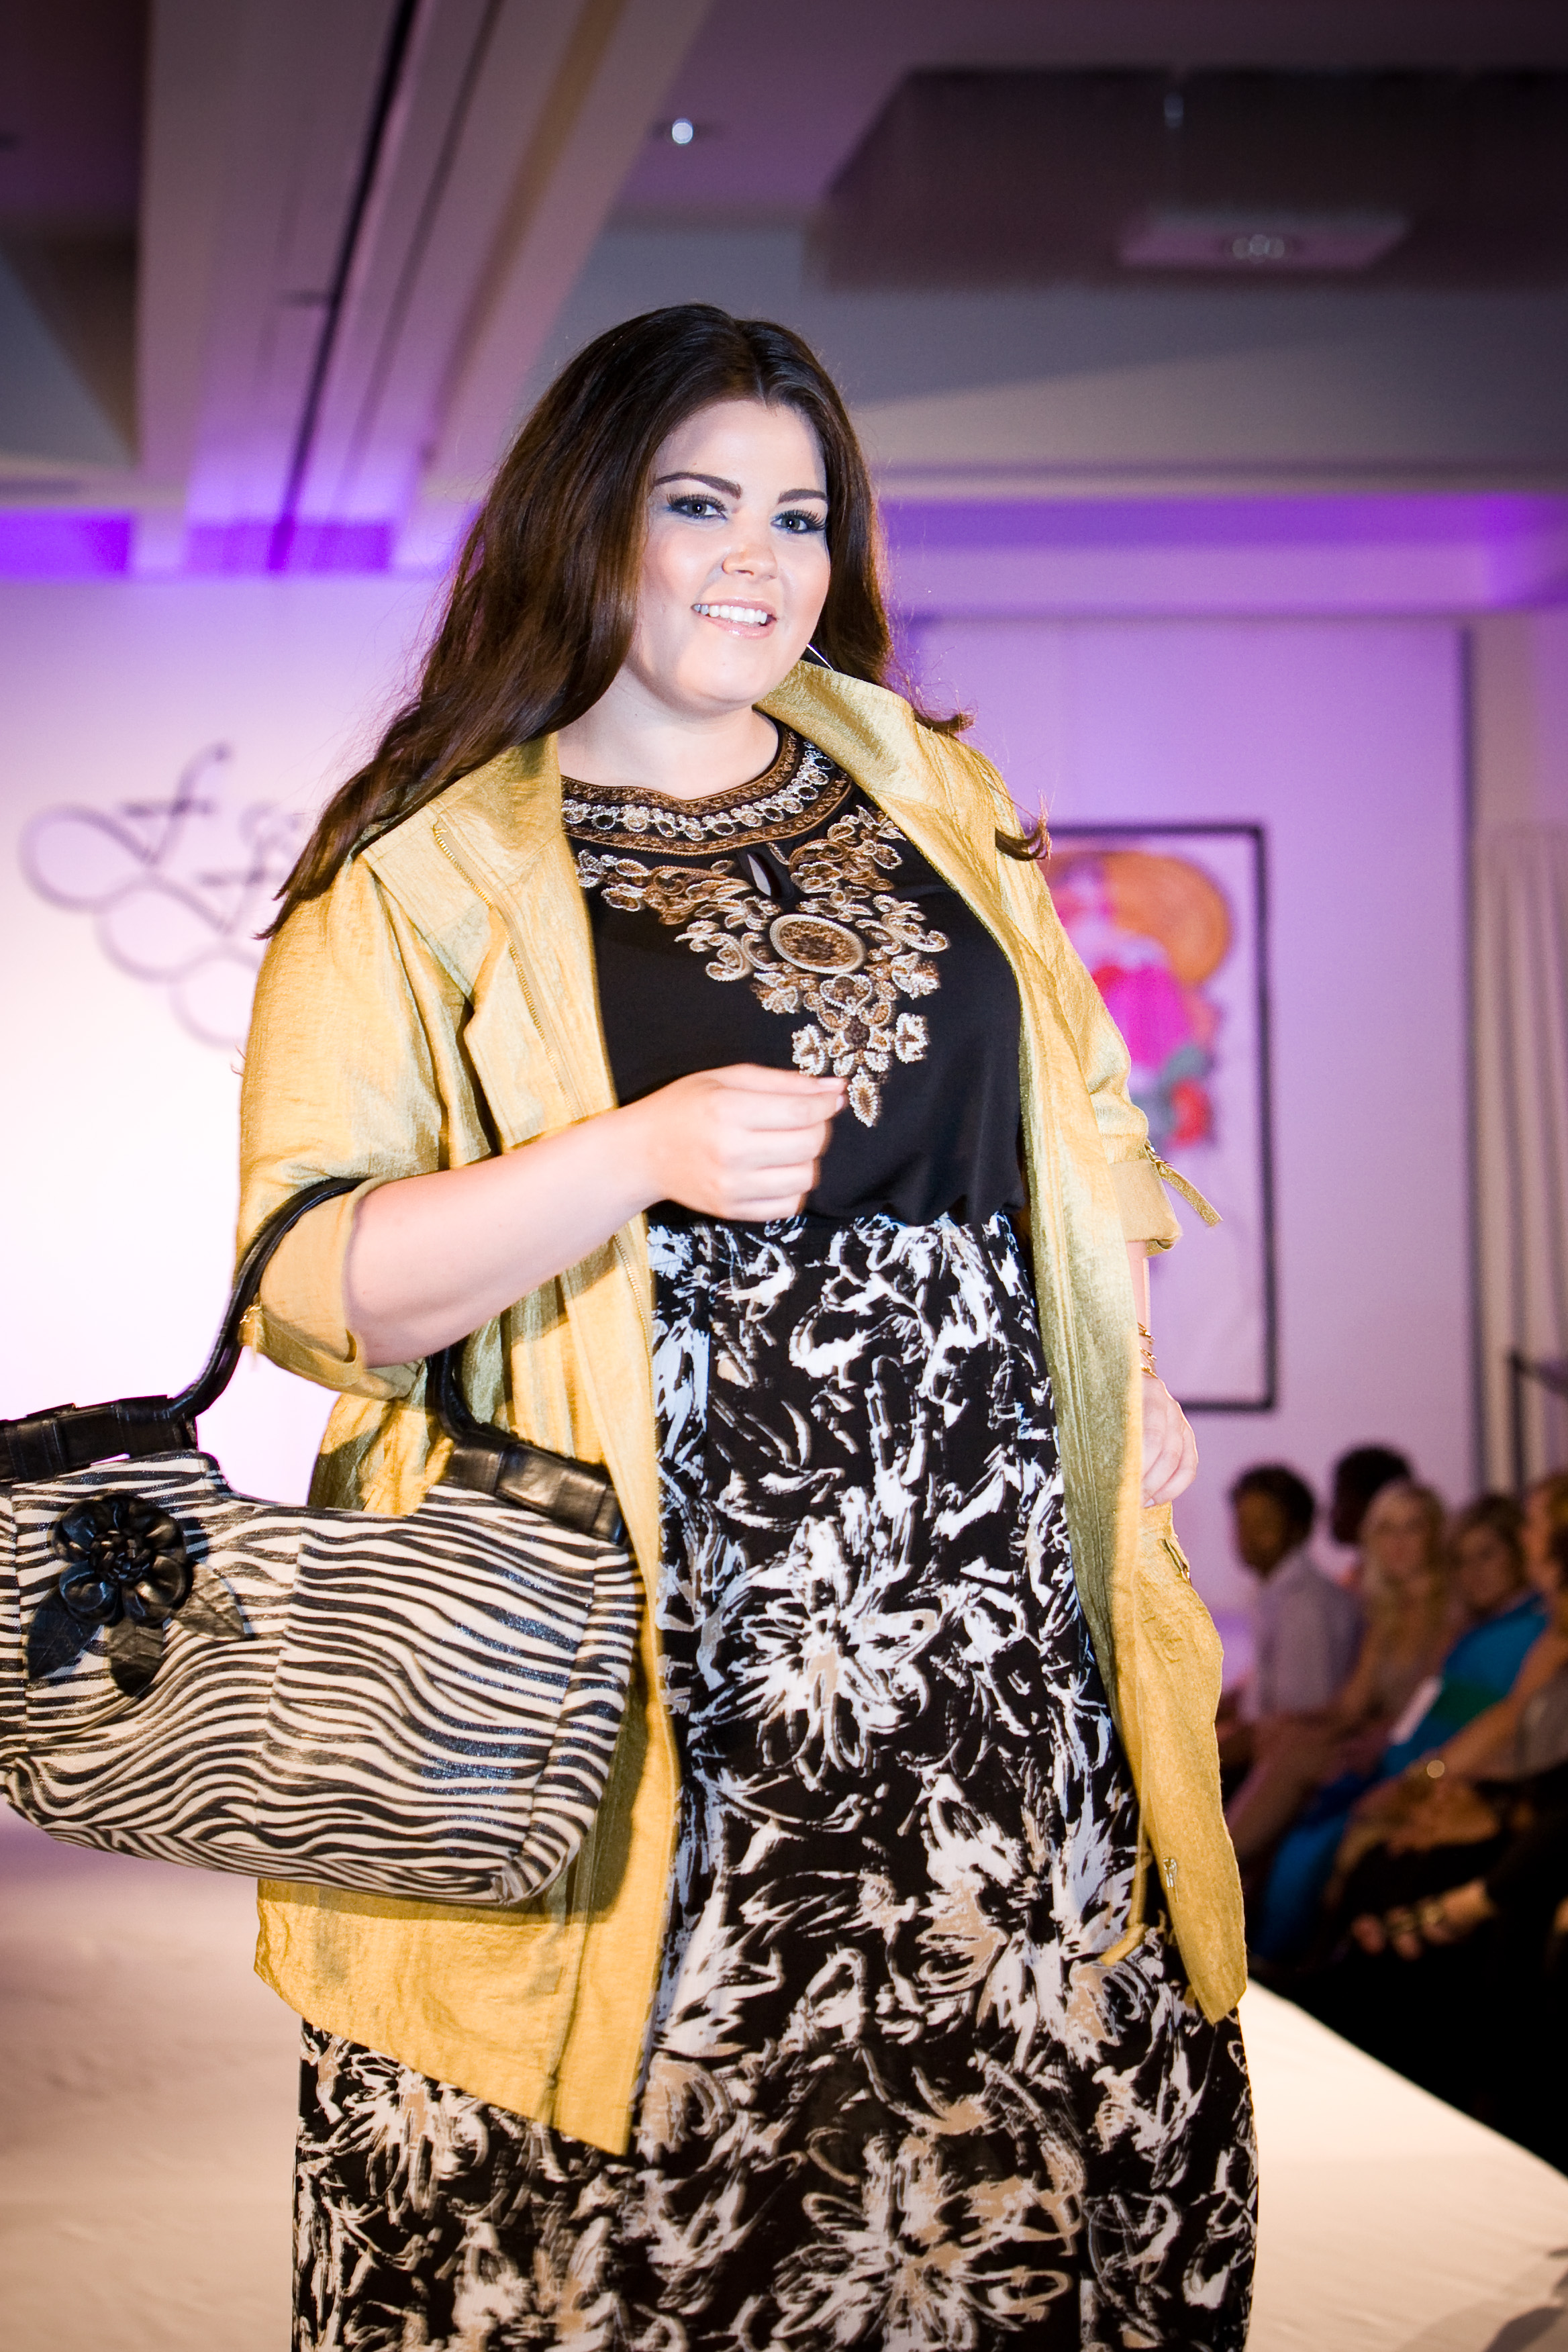 The complete Sonsi collection from Full-Figured Fashion Week